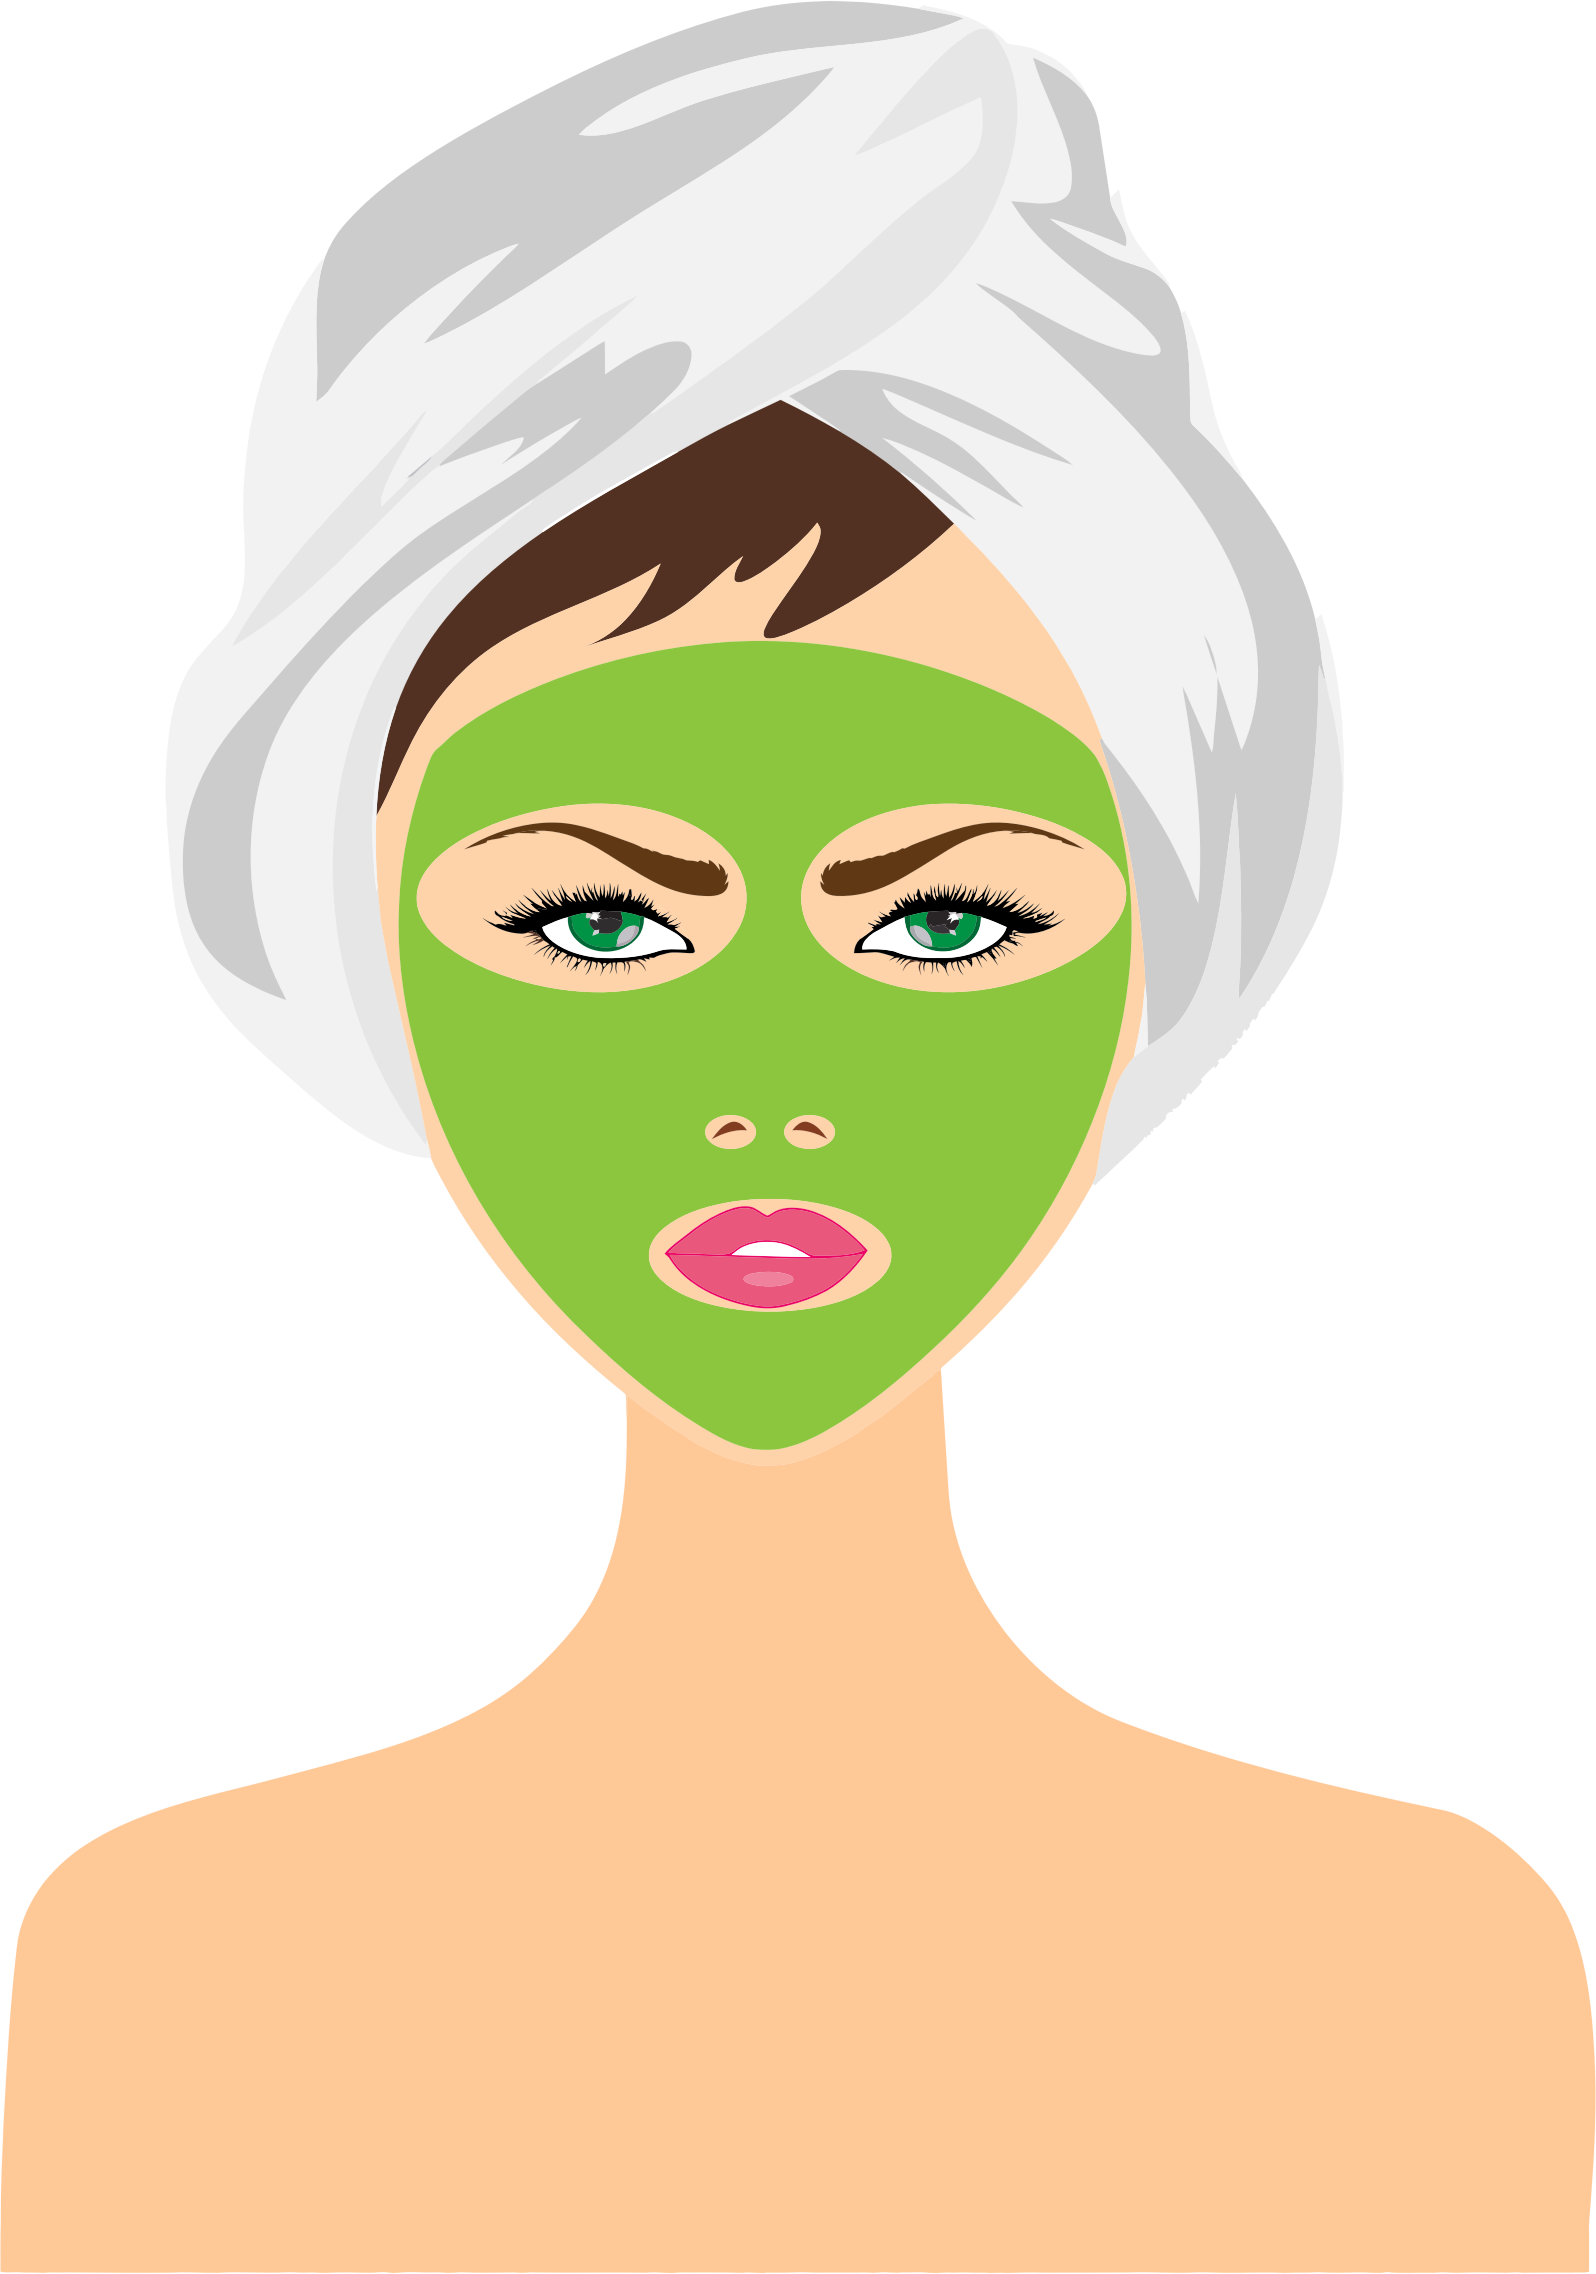 Beauty Treatment Woman by GDJ